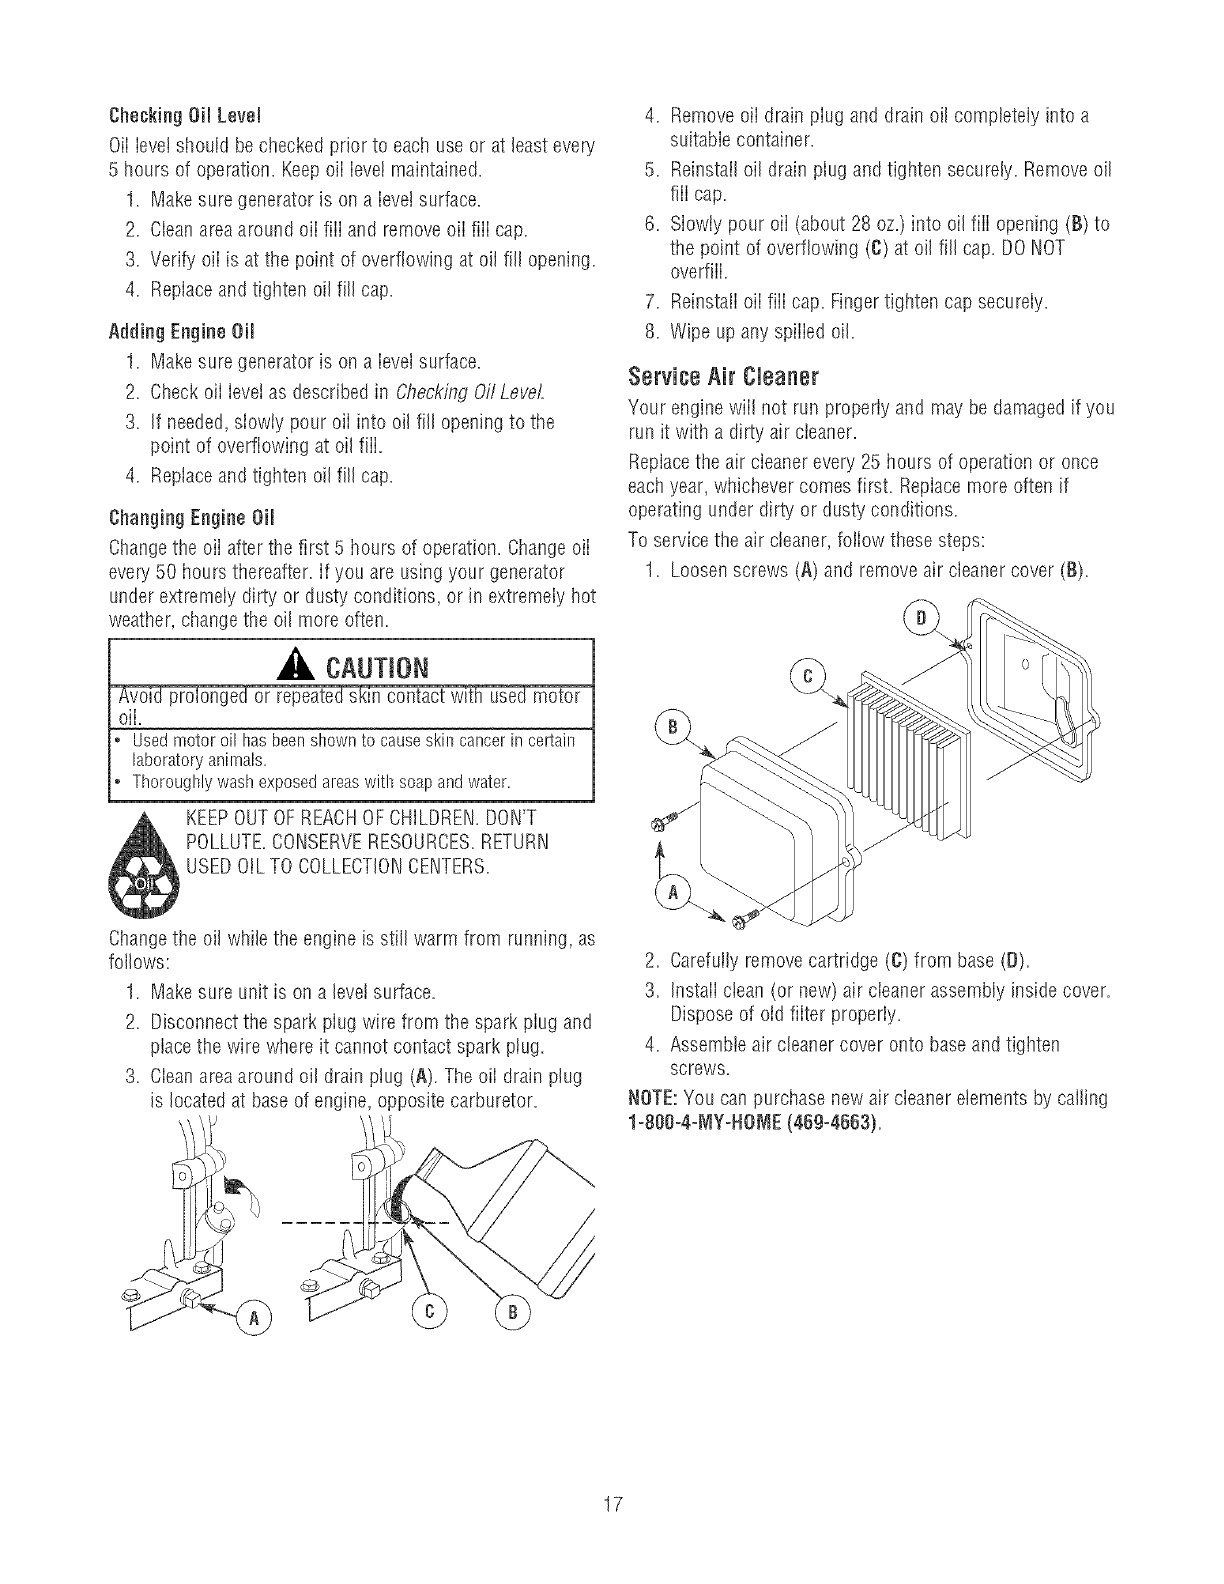 Page 17 of Craftsman Portable Generator 580 32561 User Guide